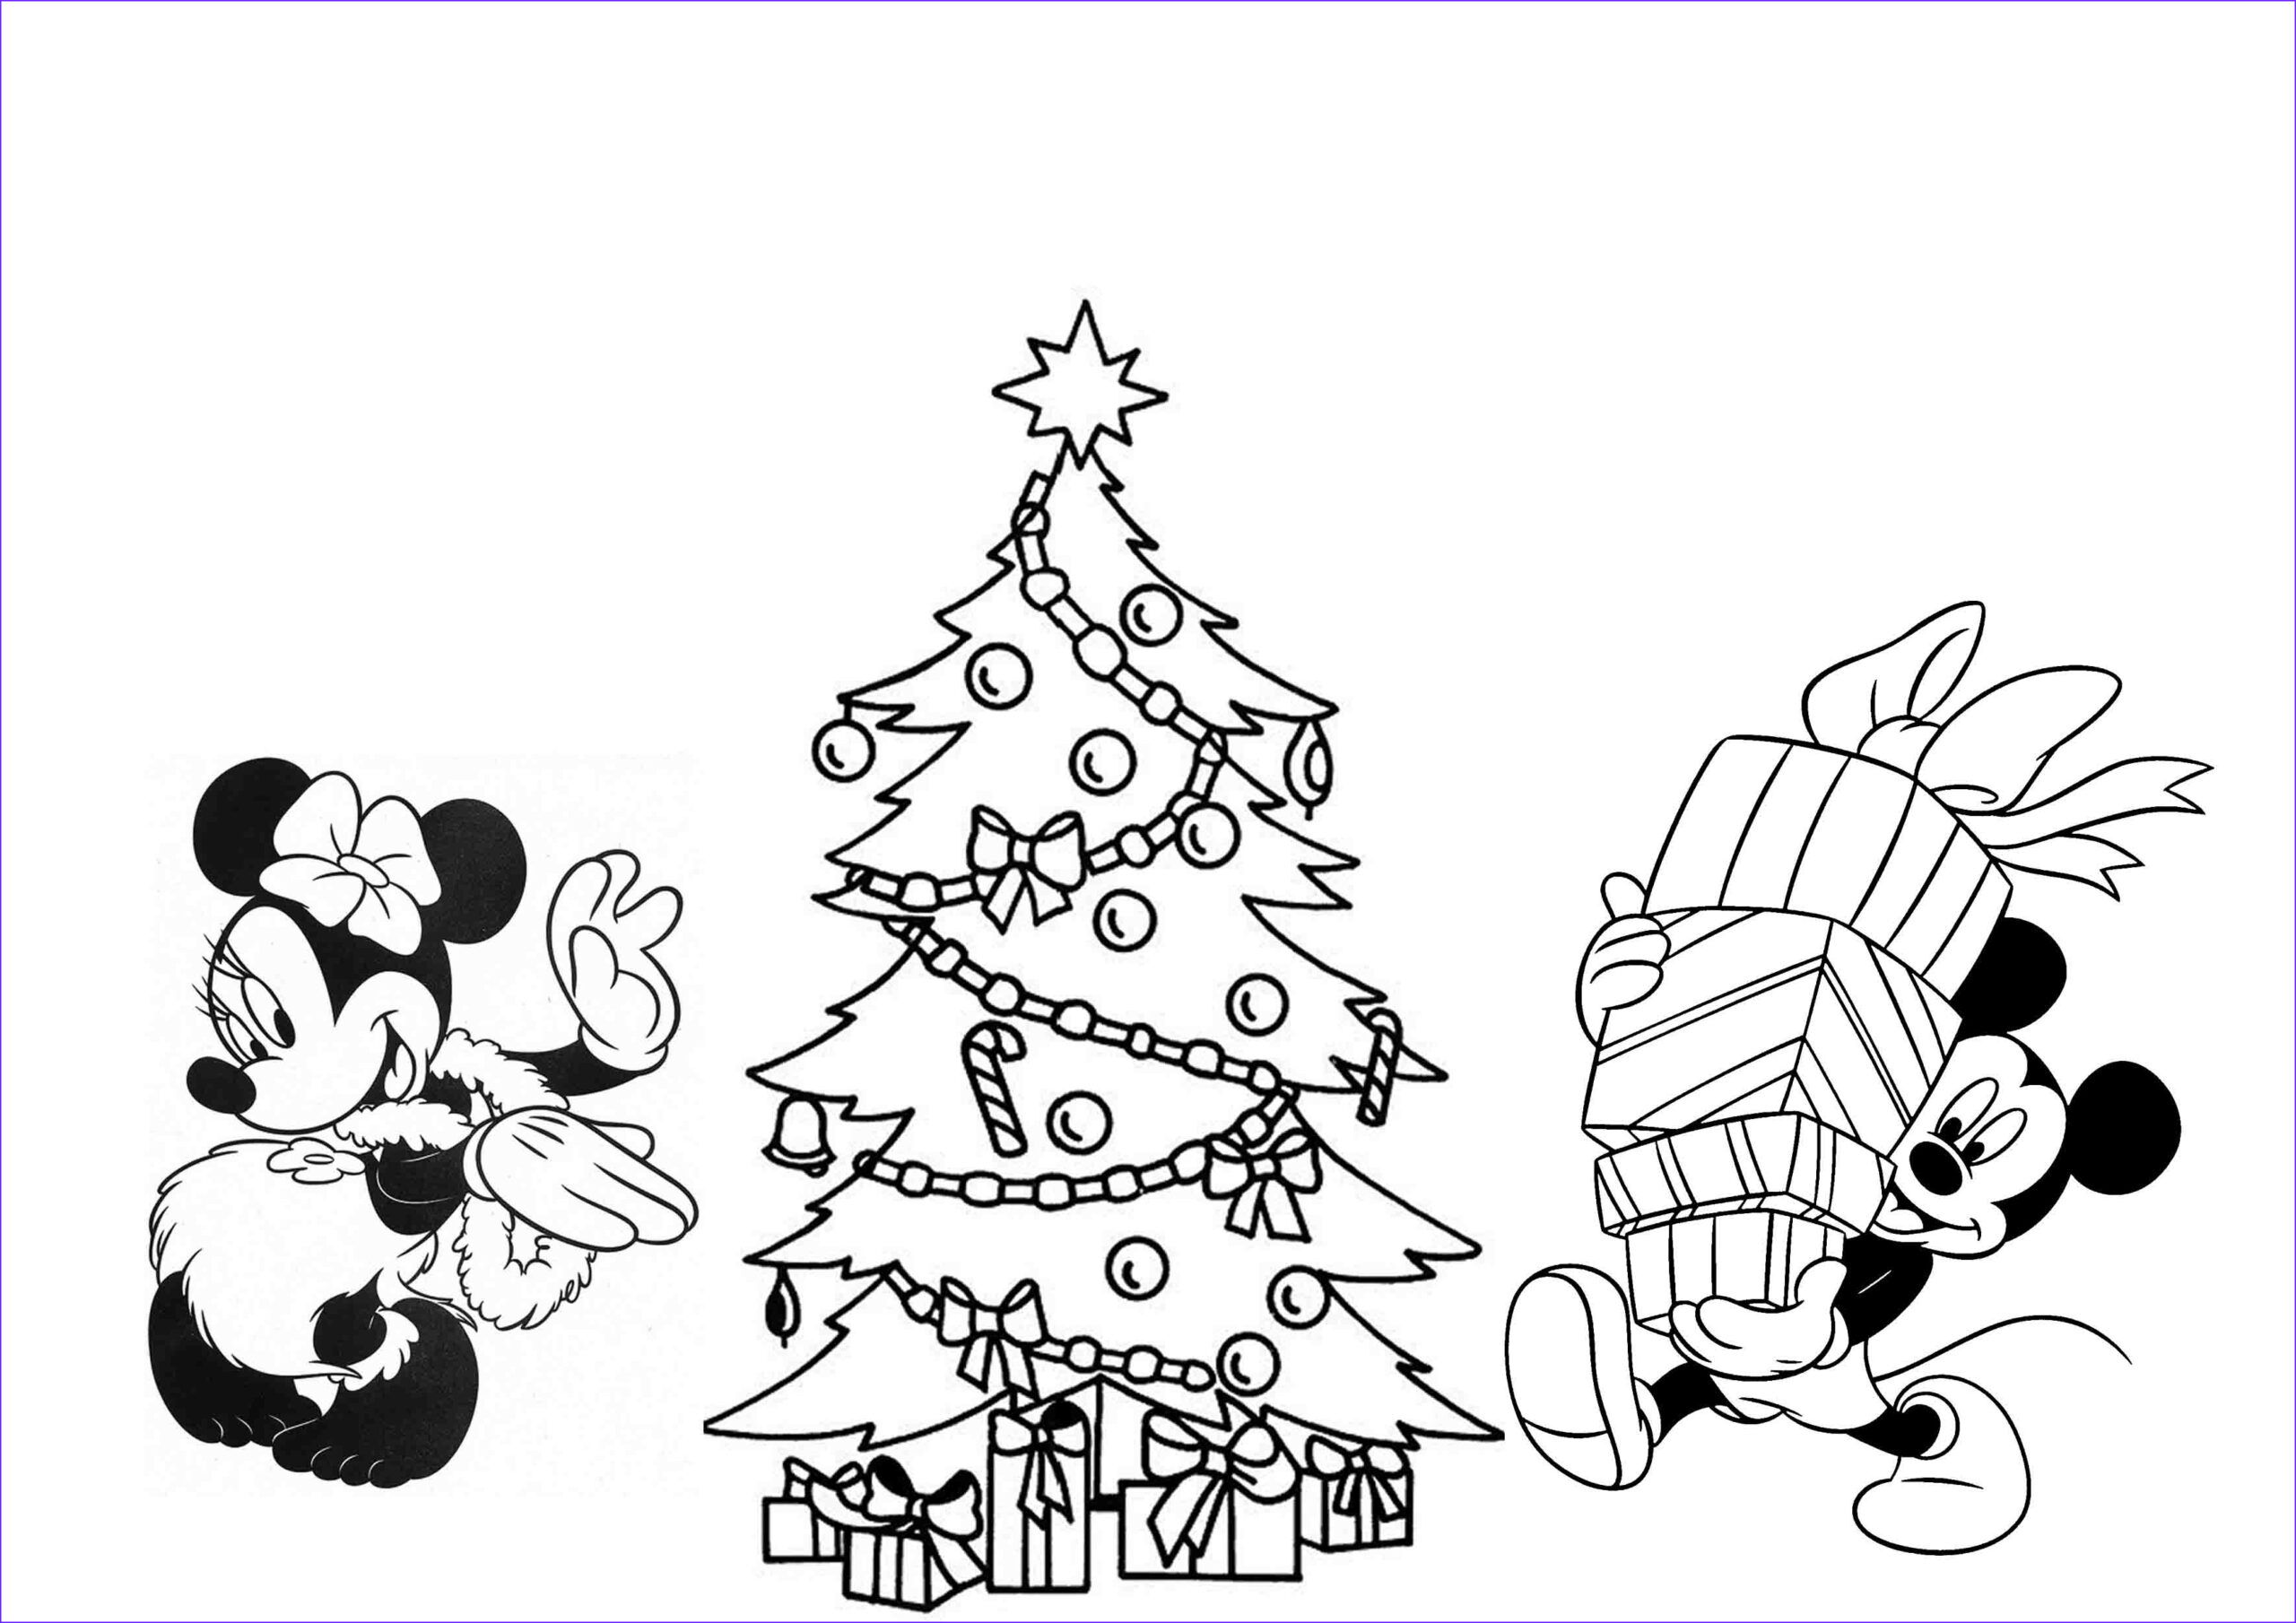 Printable Christmas Coloring Pages Beautiful Collection Print & Download Printable Christmas Coloring Pages for Kids